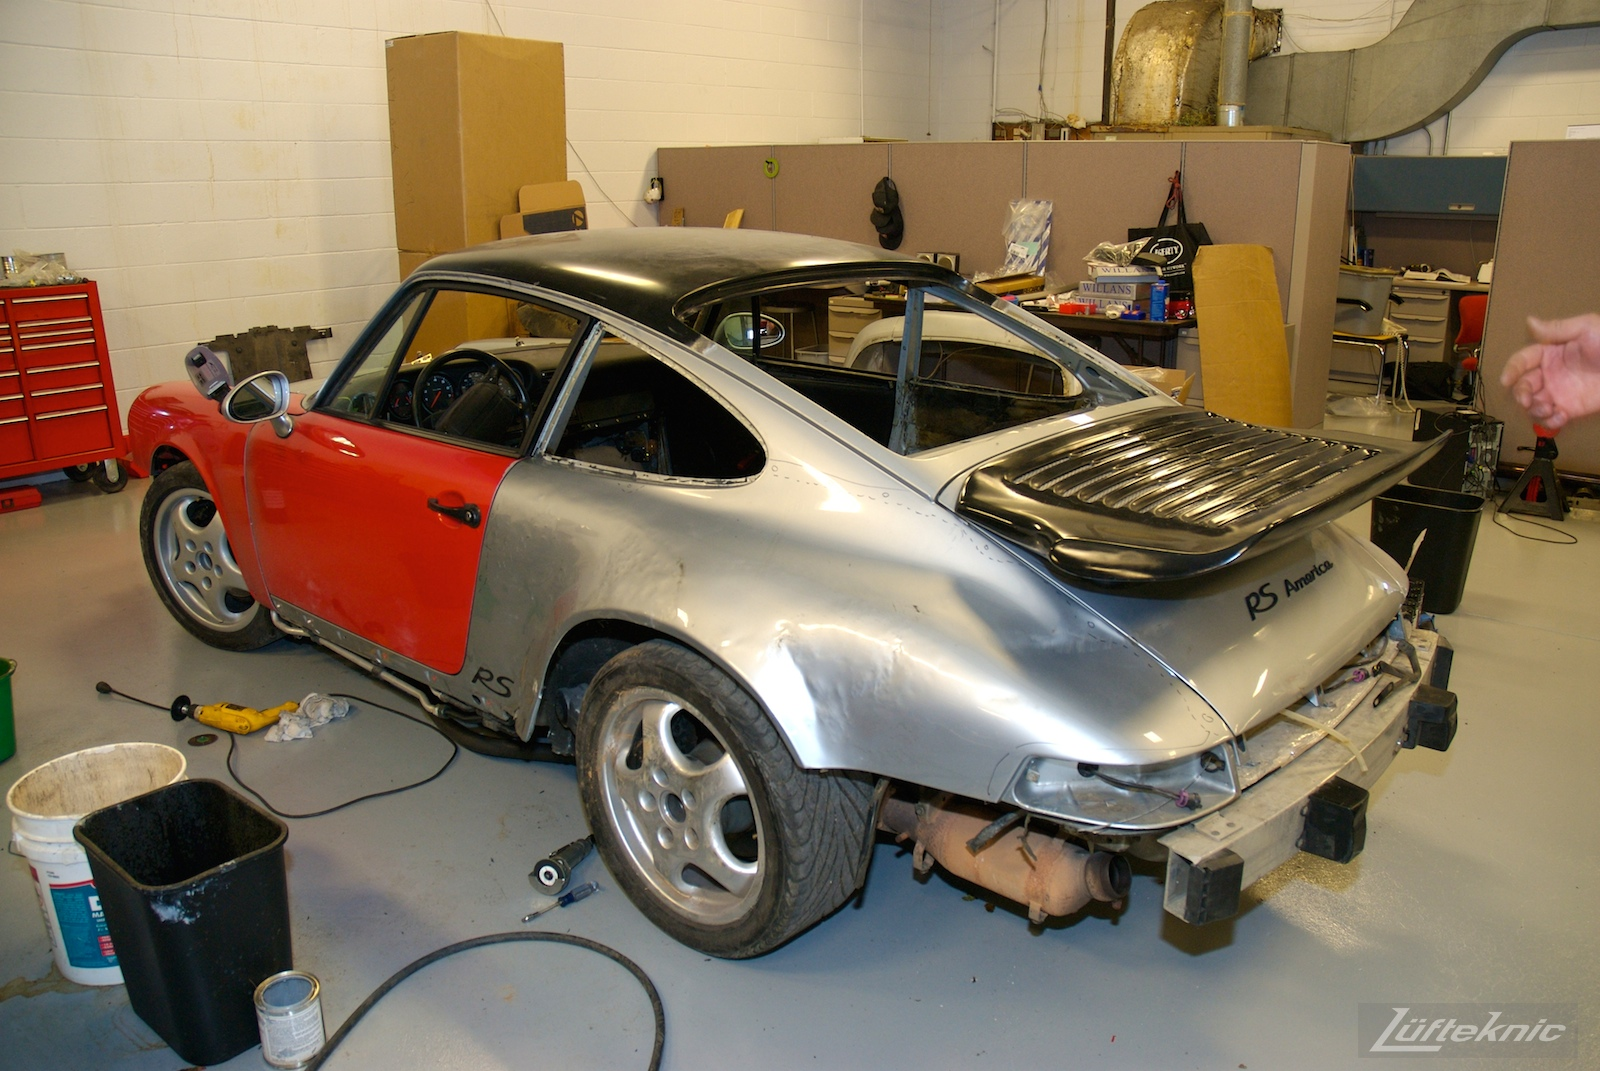 Replacement panels on a wrecked 964 RS America inside the Lüfteknic shop